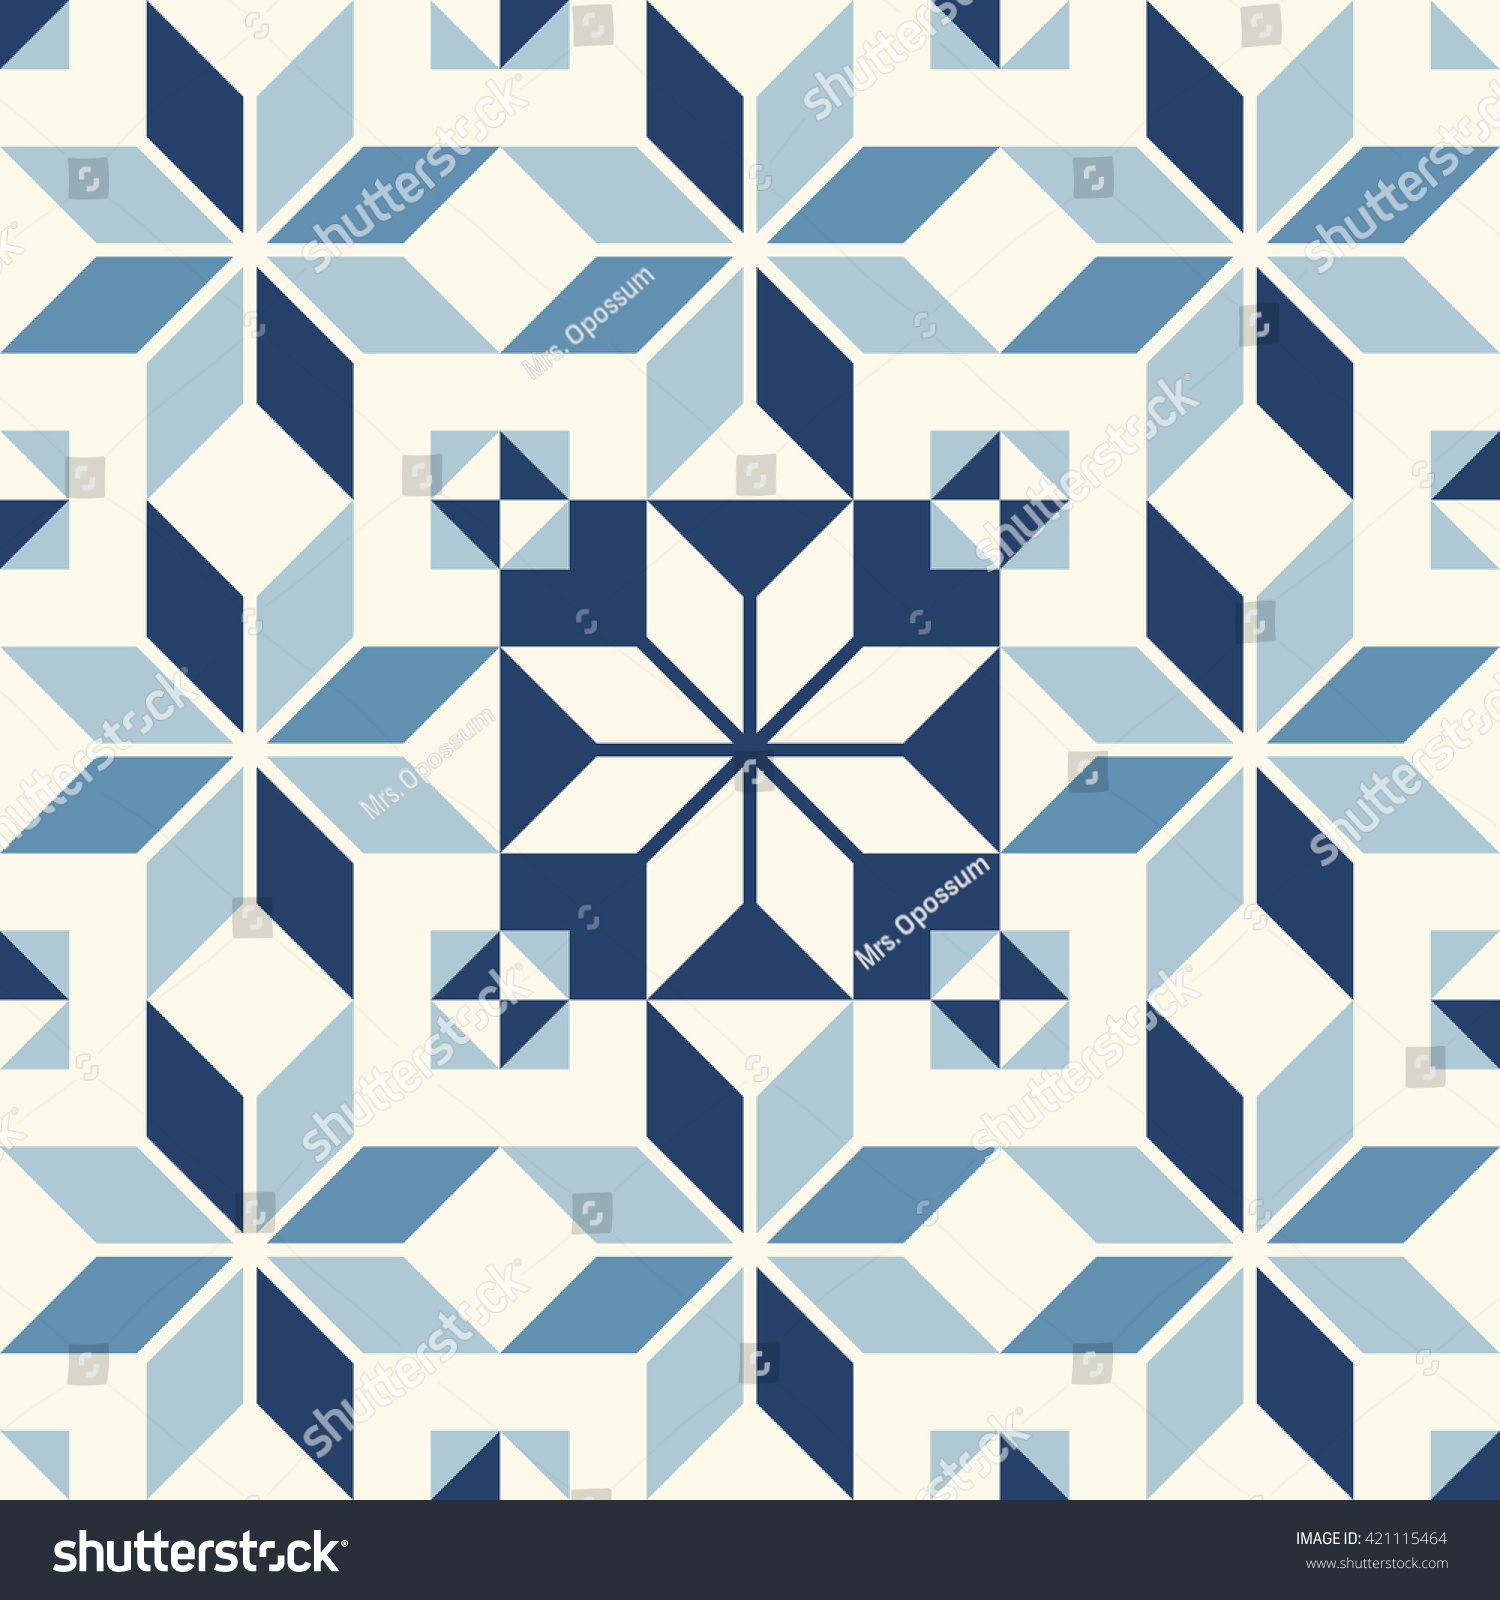 Vintage Seamless Wall Tiles Pattern Stock Vector 421115464 ...